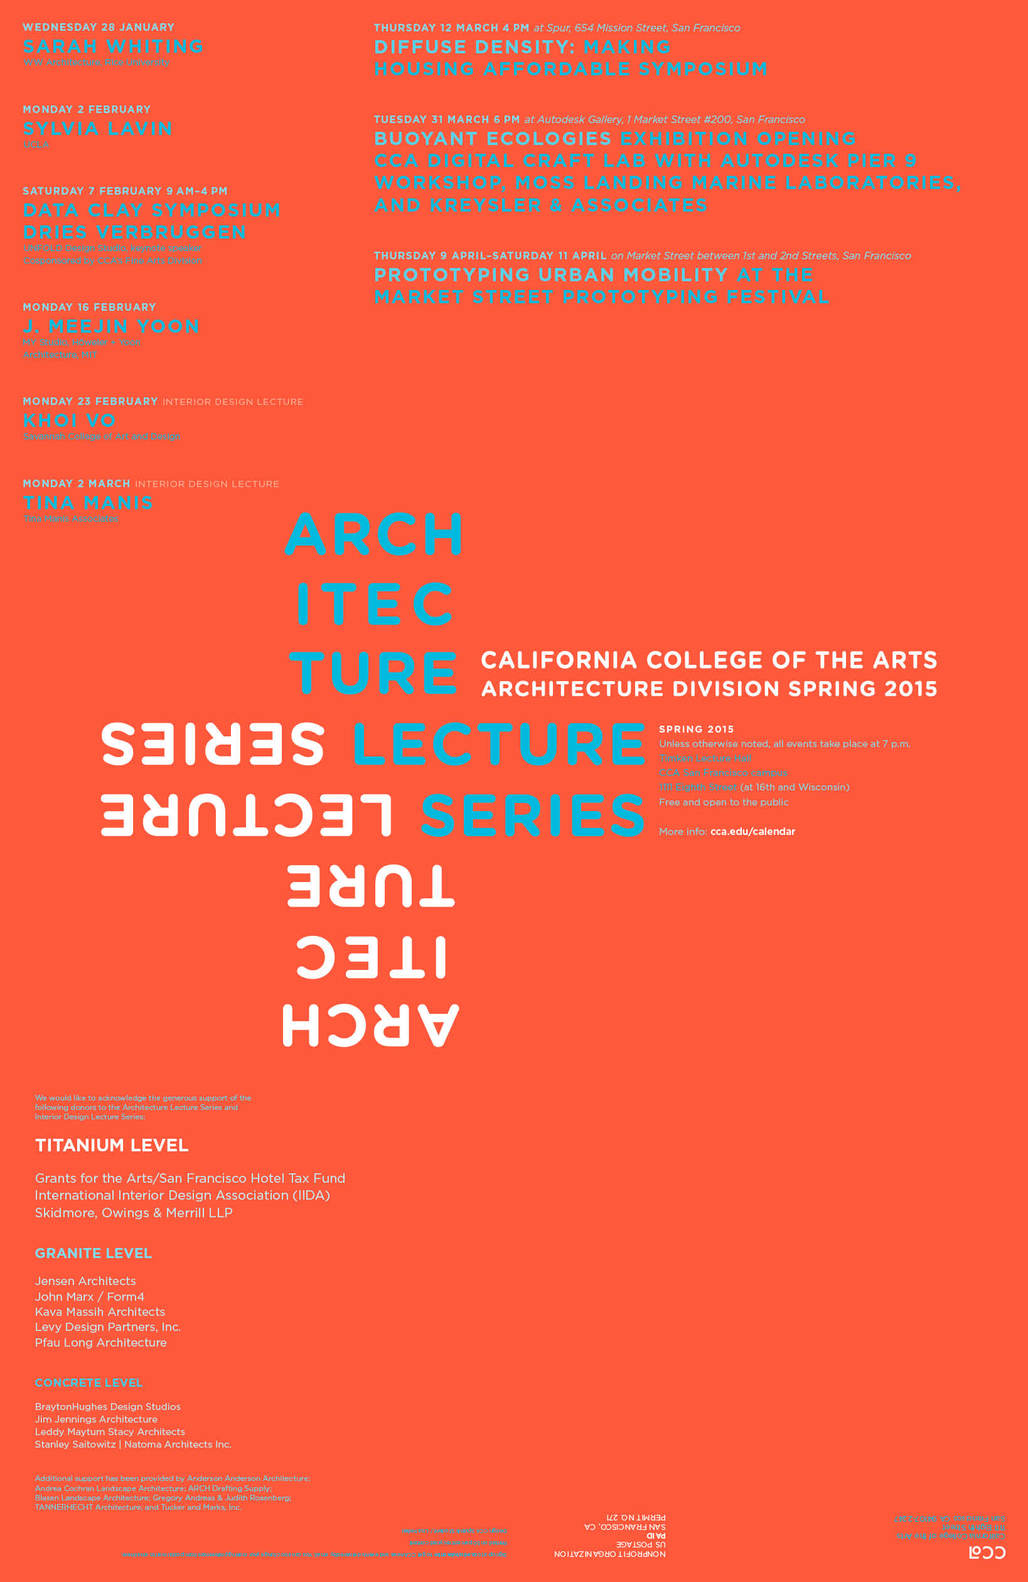 Spring '15 lectures + events for California College of the Arts Architecture and Interior Architecture. Image courtesy of California College of the Arts